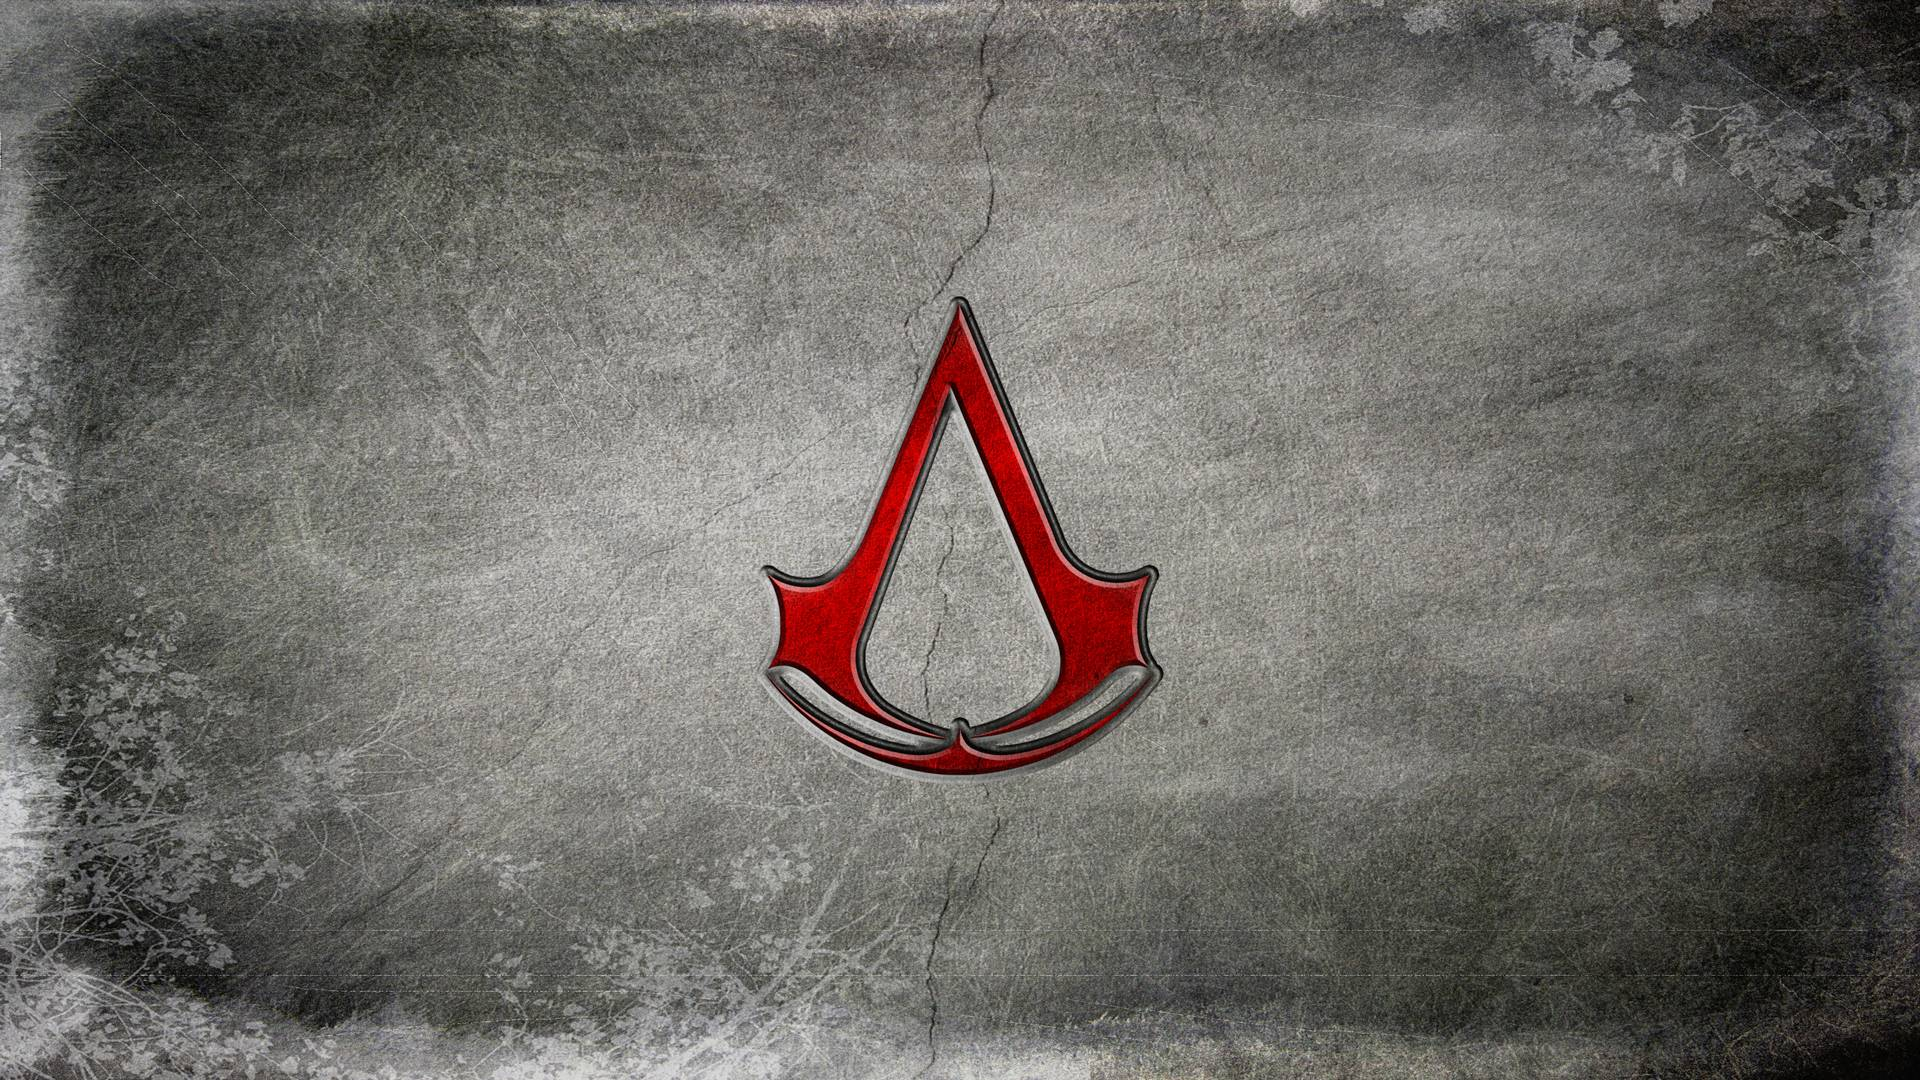 Assassin&Creed Emblem by DecanAndersen